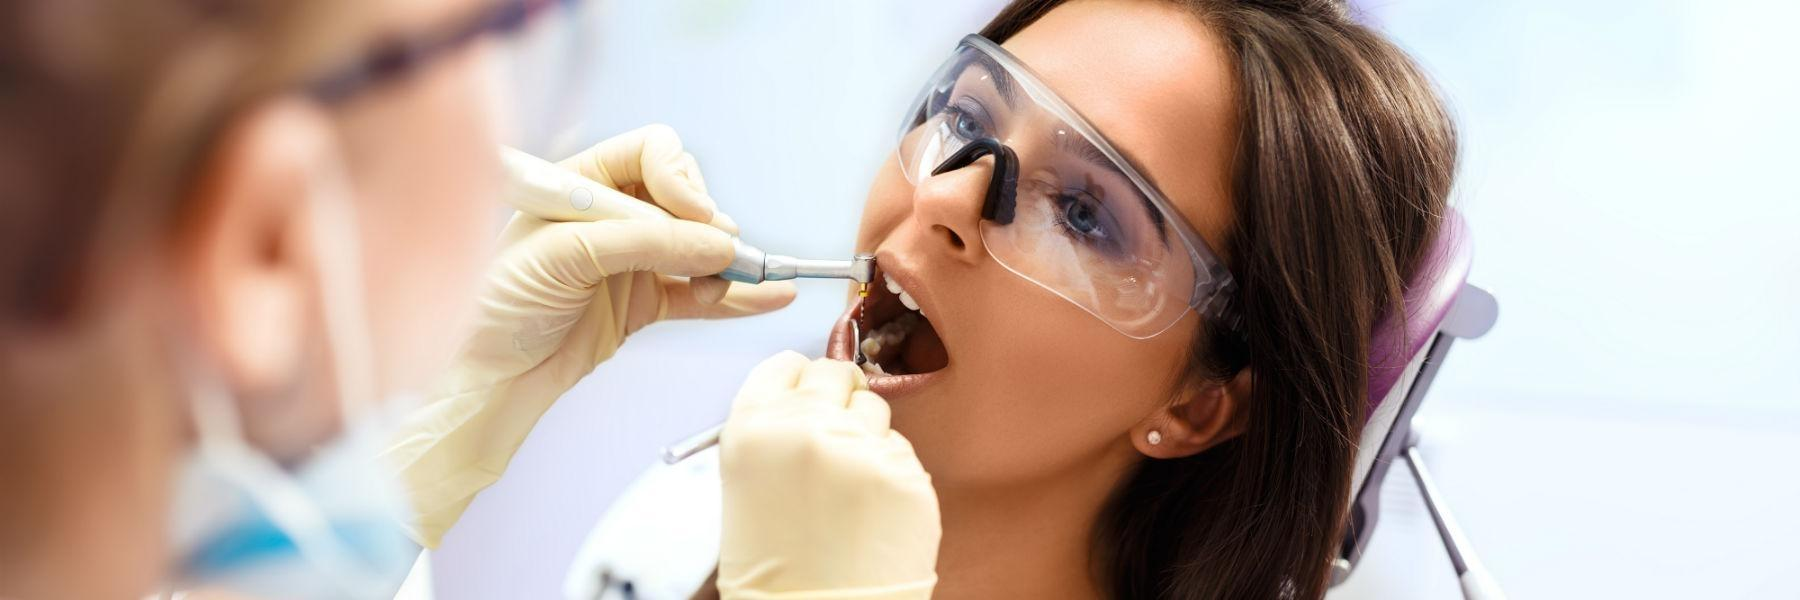 Woman getting dental work done | Dentist Greeley CO